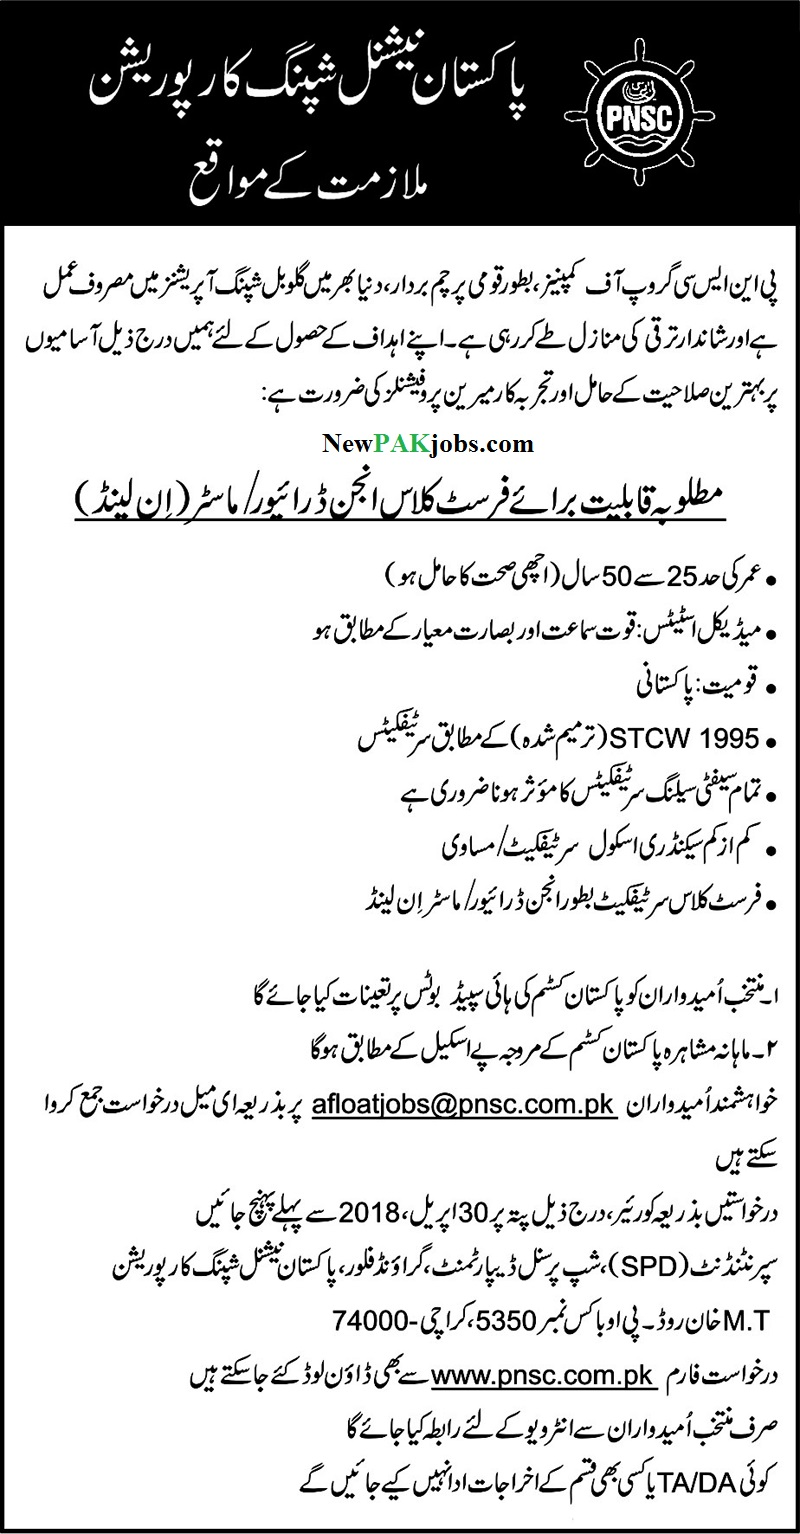 First Class Engine Driver required in Pakistan National Shipping Corporation PNSC